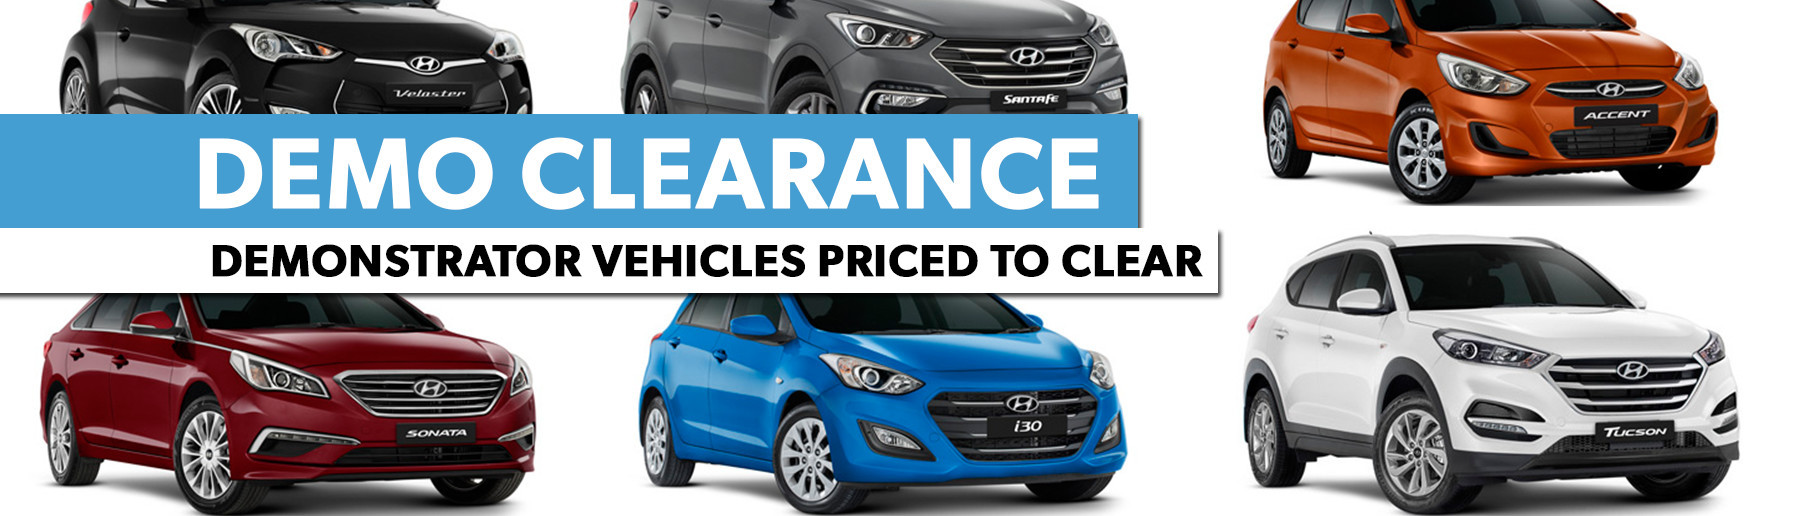 Brisbane Hyundai Demo Clearance